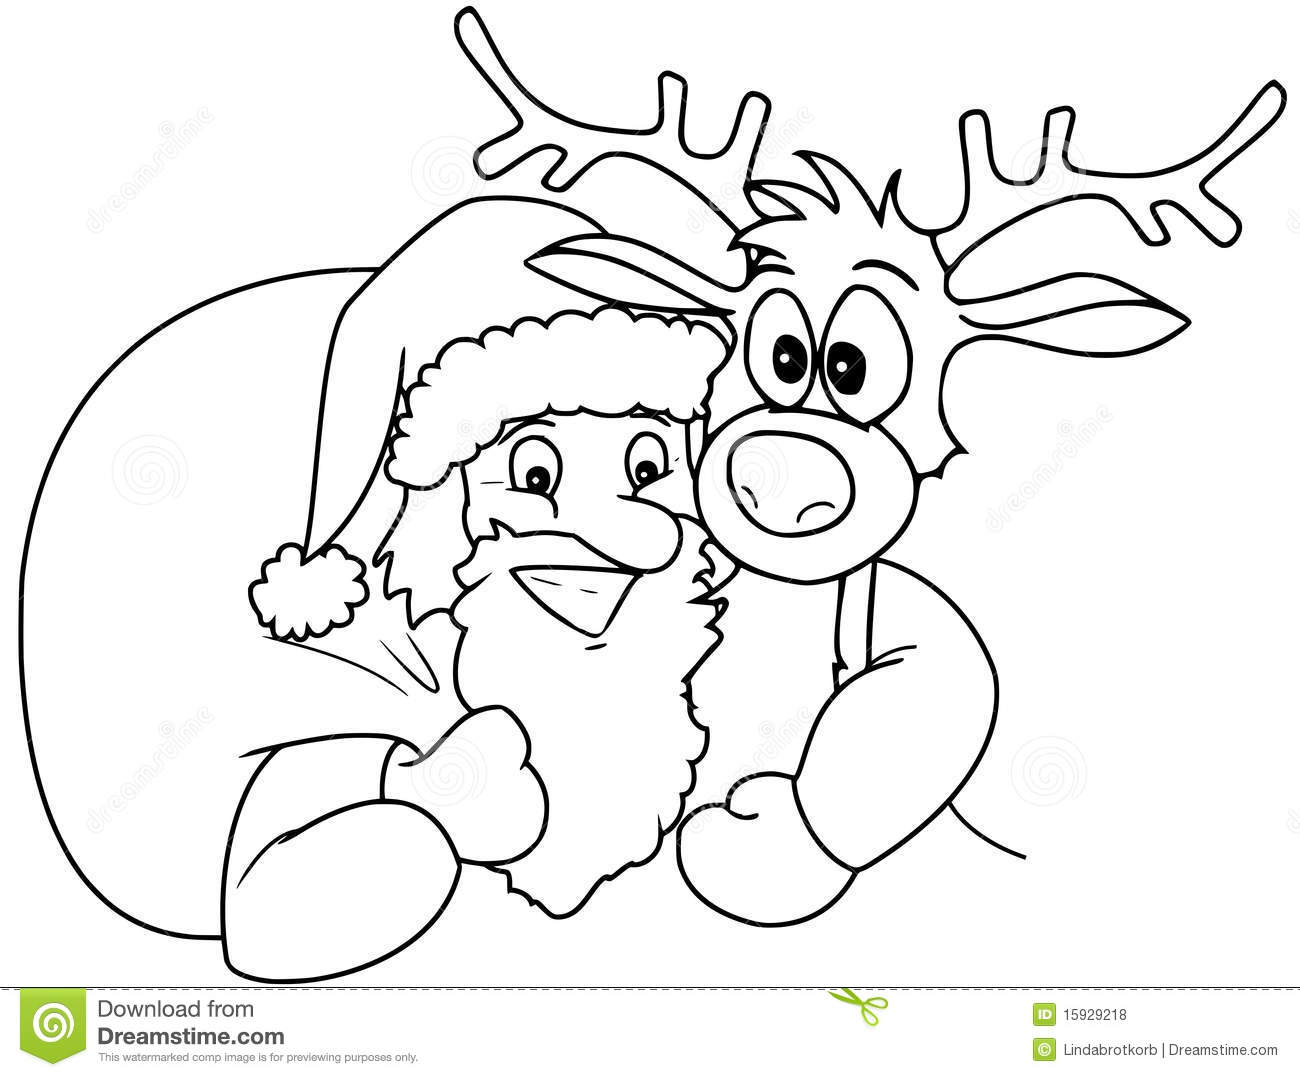 abominable snowman rudolph bumble coloring pages pictures to pin